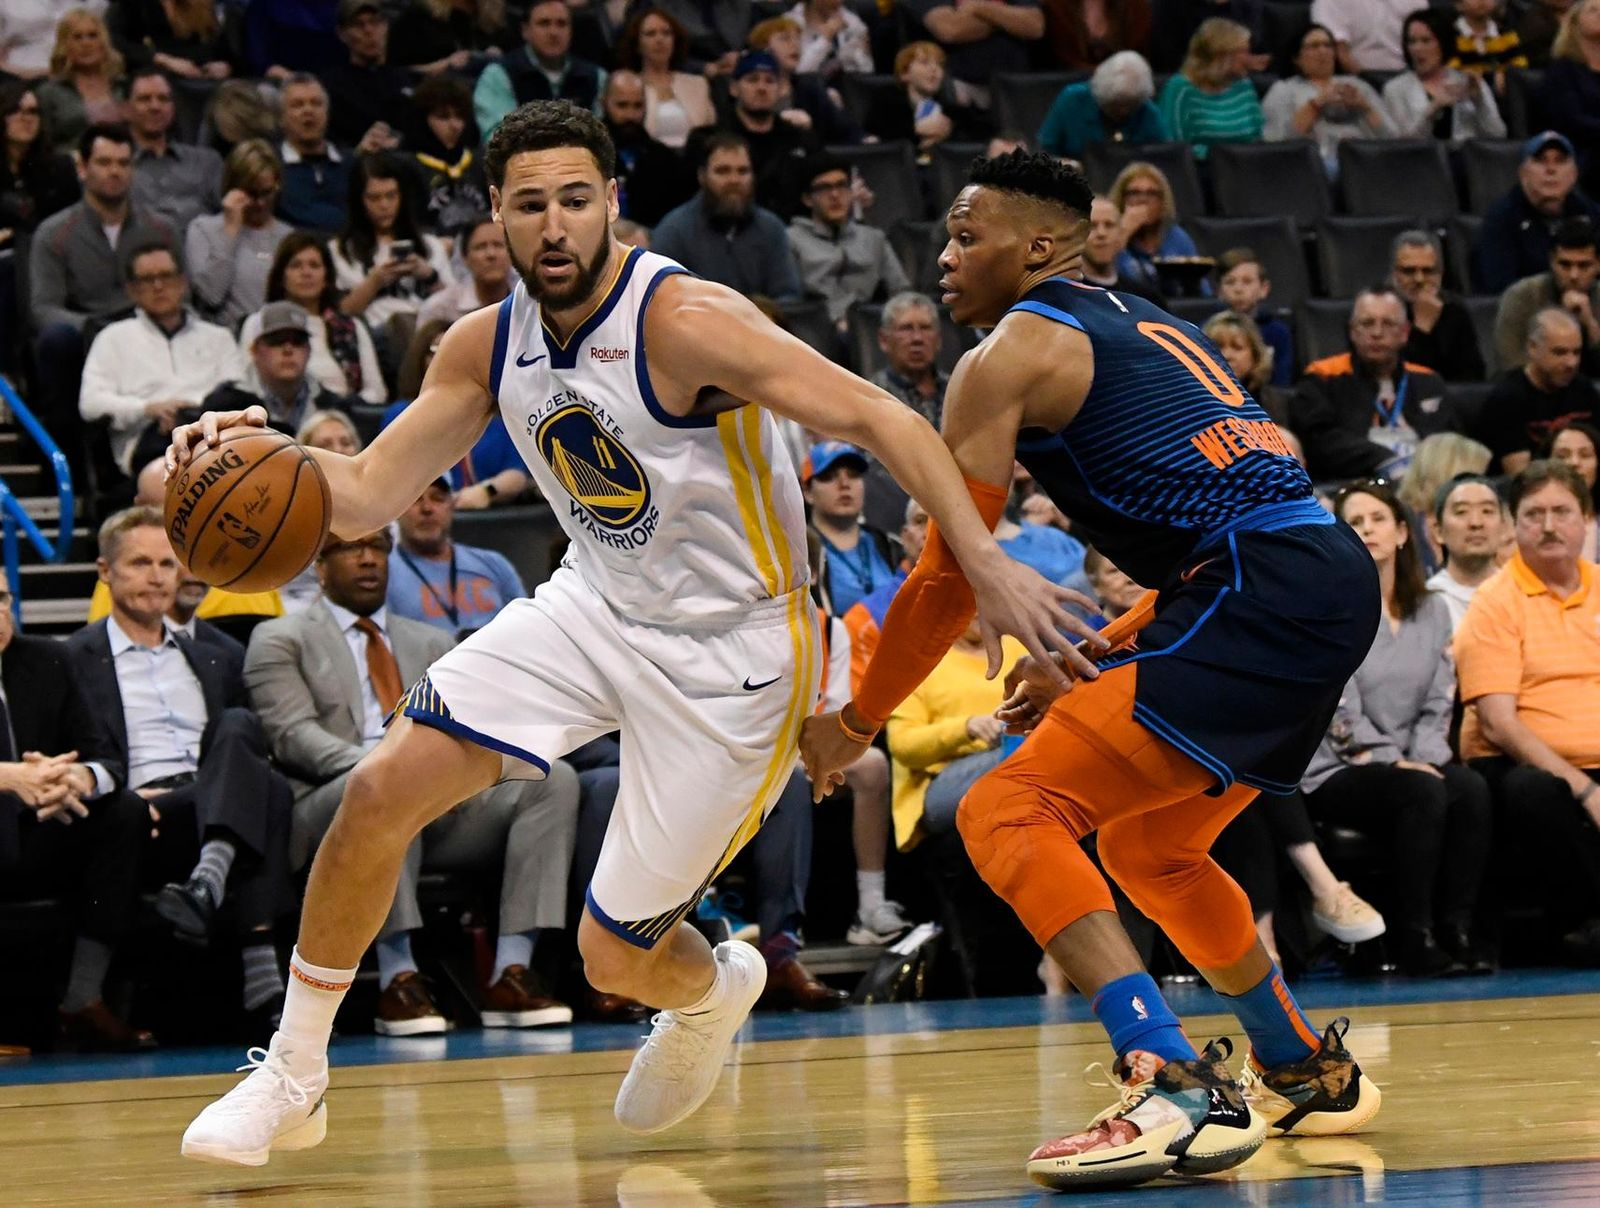 Oklahoma City Thunder guard Russell Westbrook (0) defends against Golden State Warriors guard Klay Thompson (11) during the first half of an NBA basketball game Saturday, March 16, 2019, in Oklahoma City. (AP Photo/June Frantz Hunt)